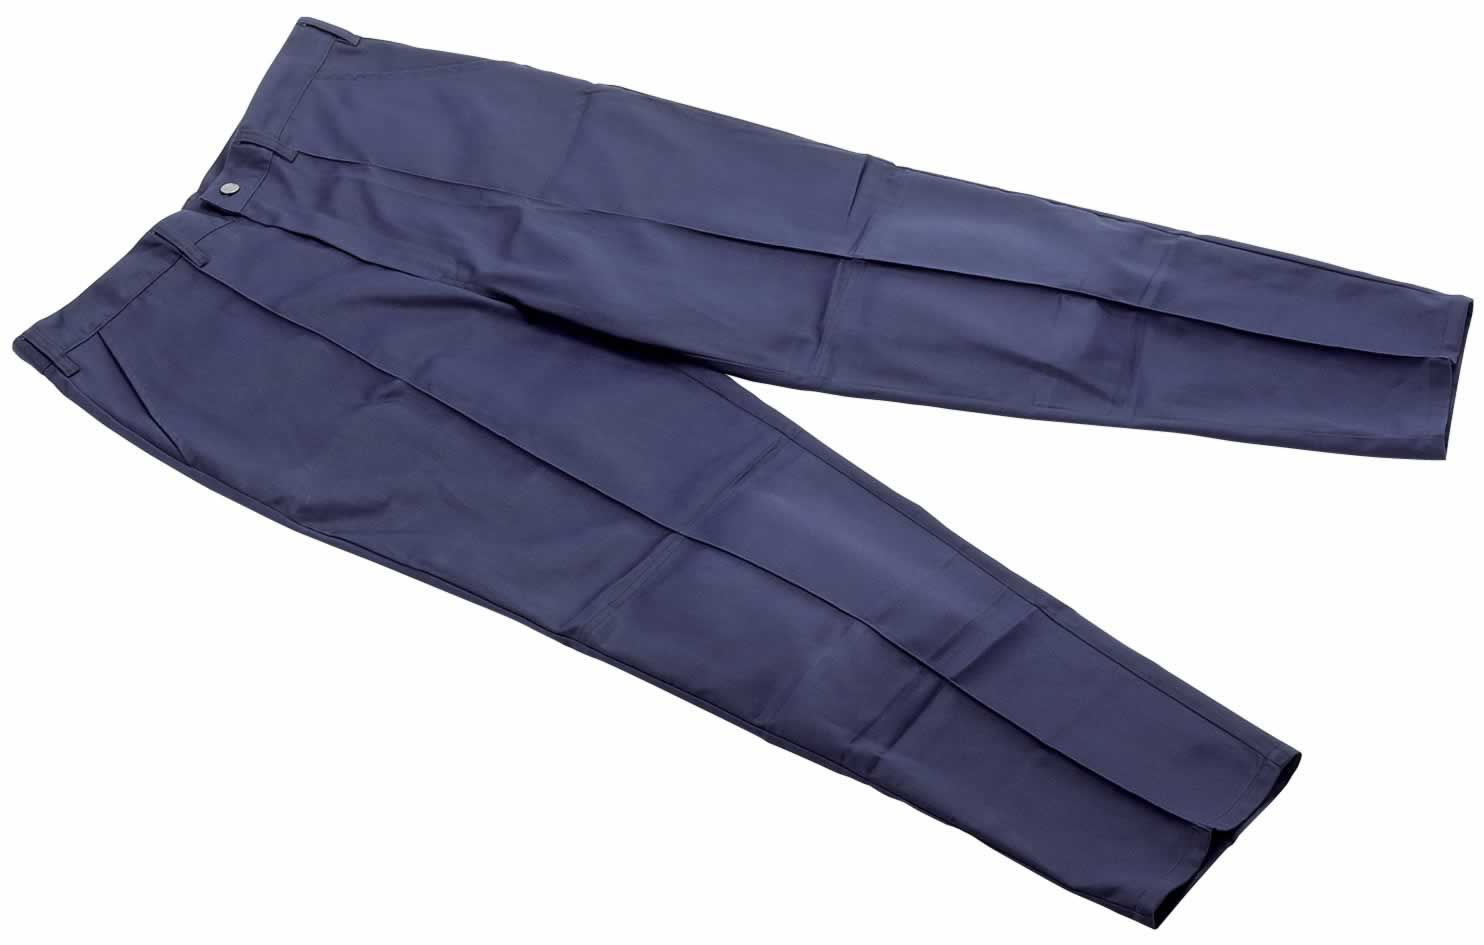 "32/32"" POLYCOTTON WORK TROUSERS WITH KNEE PAD FACILITY"